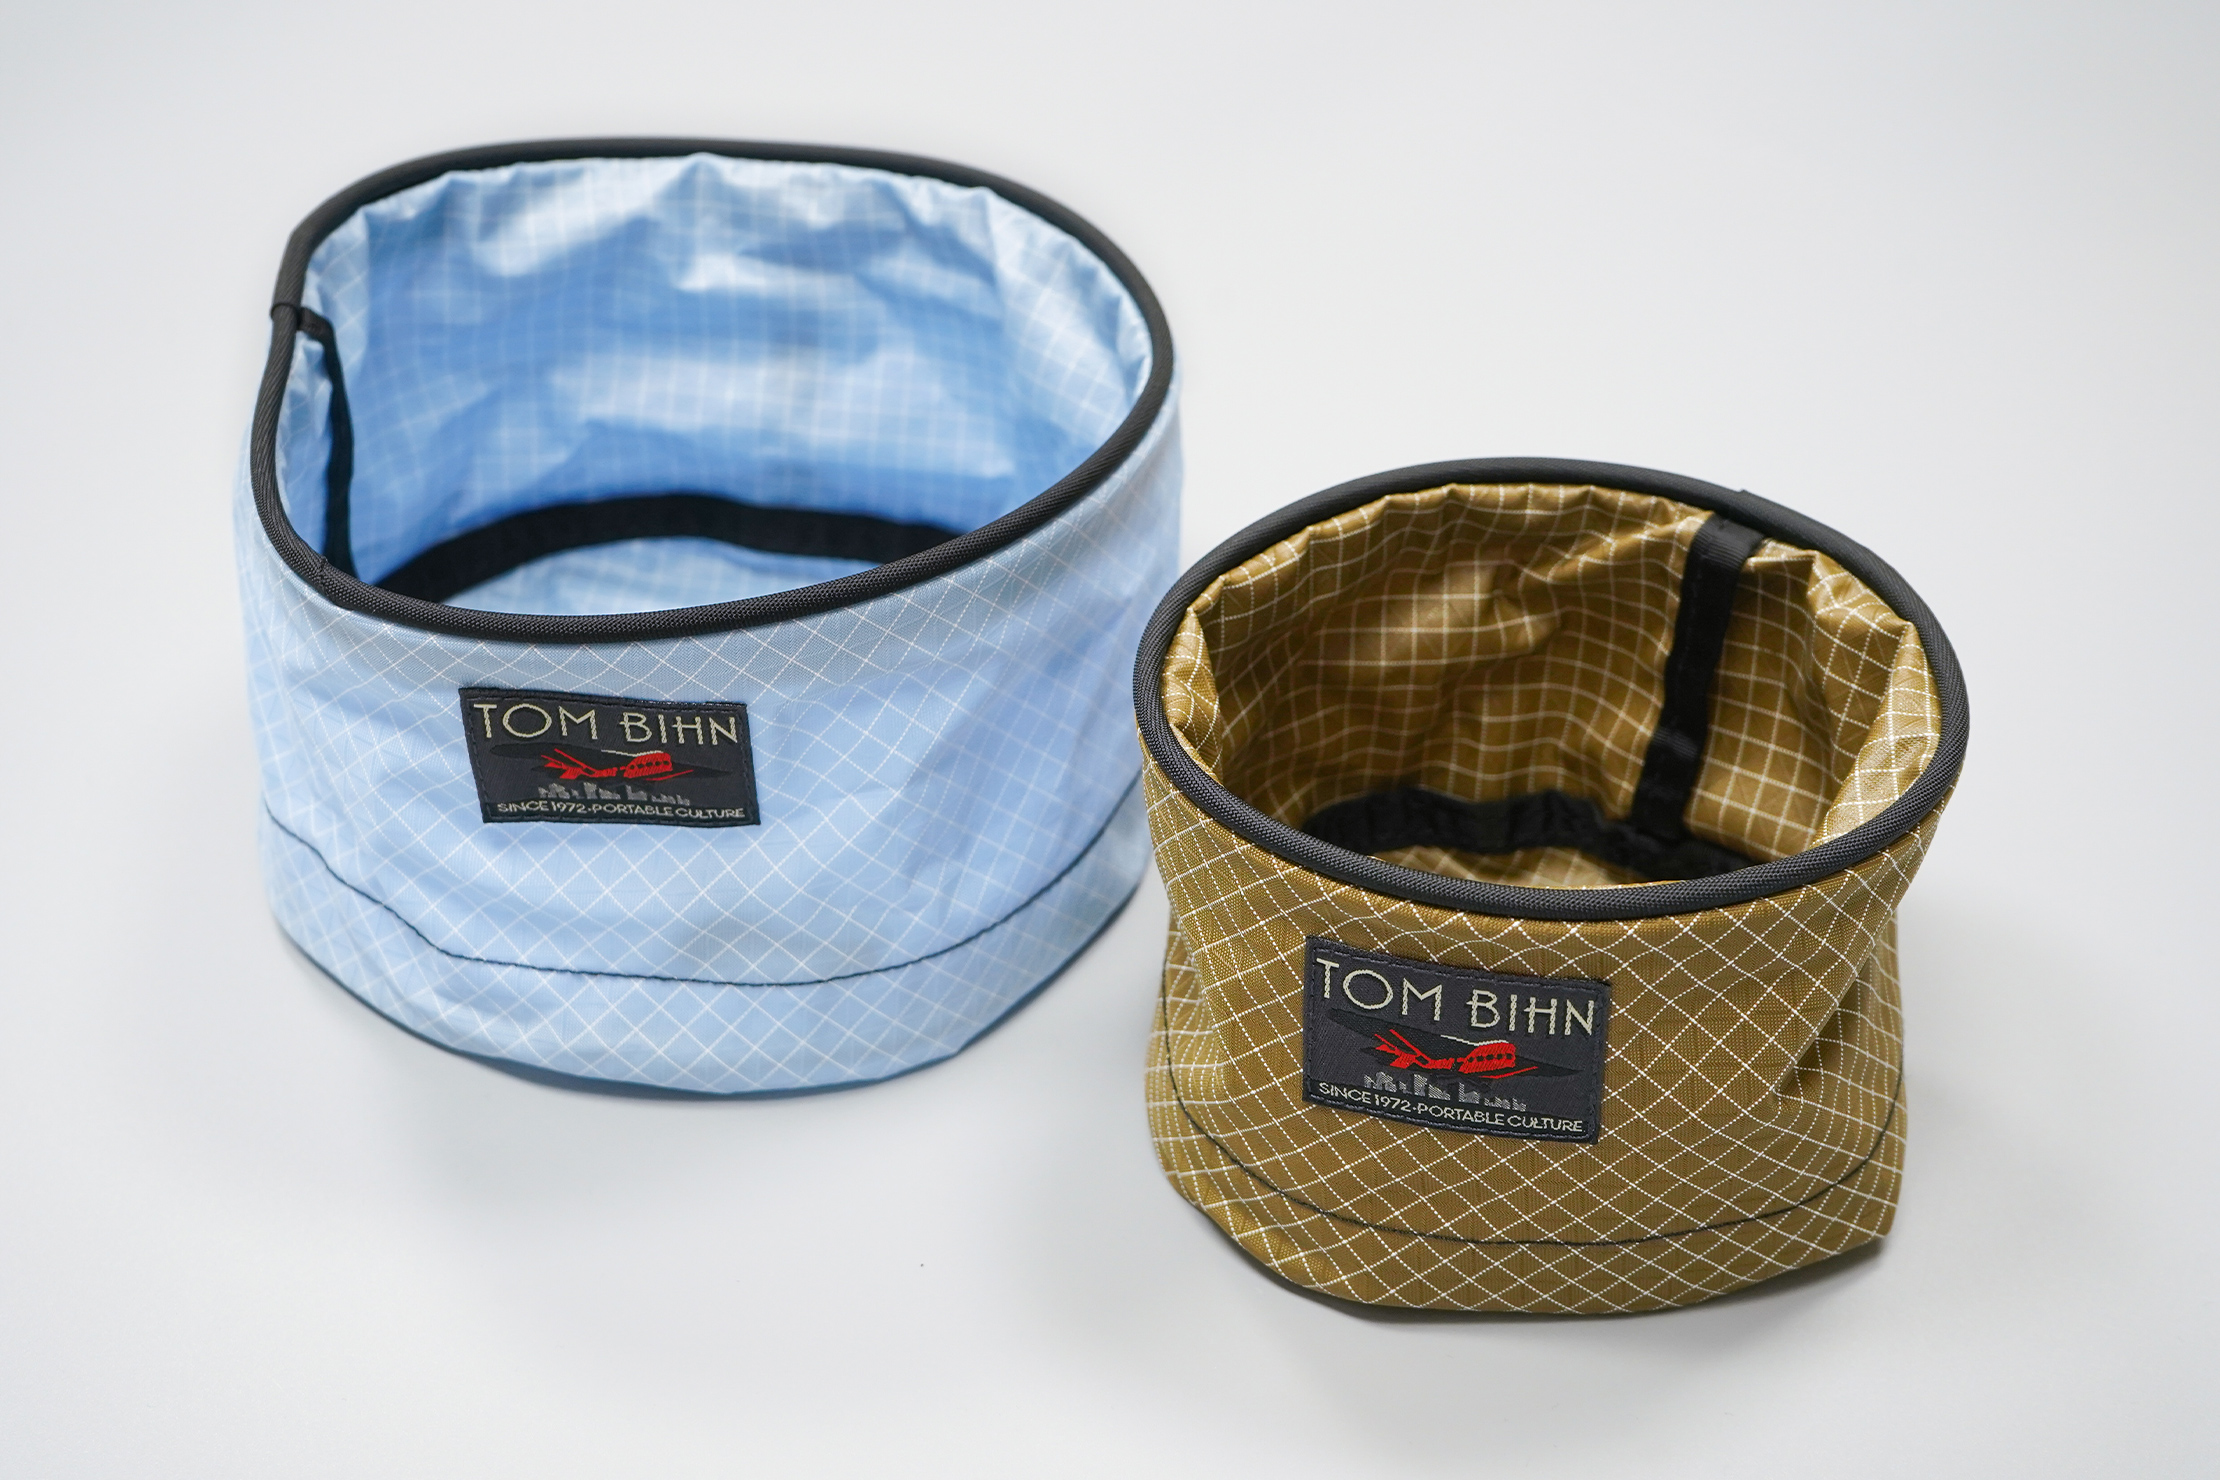 Tom Bihn Travel Tray | Left: Large size | Right: Small size